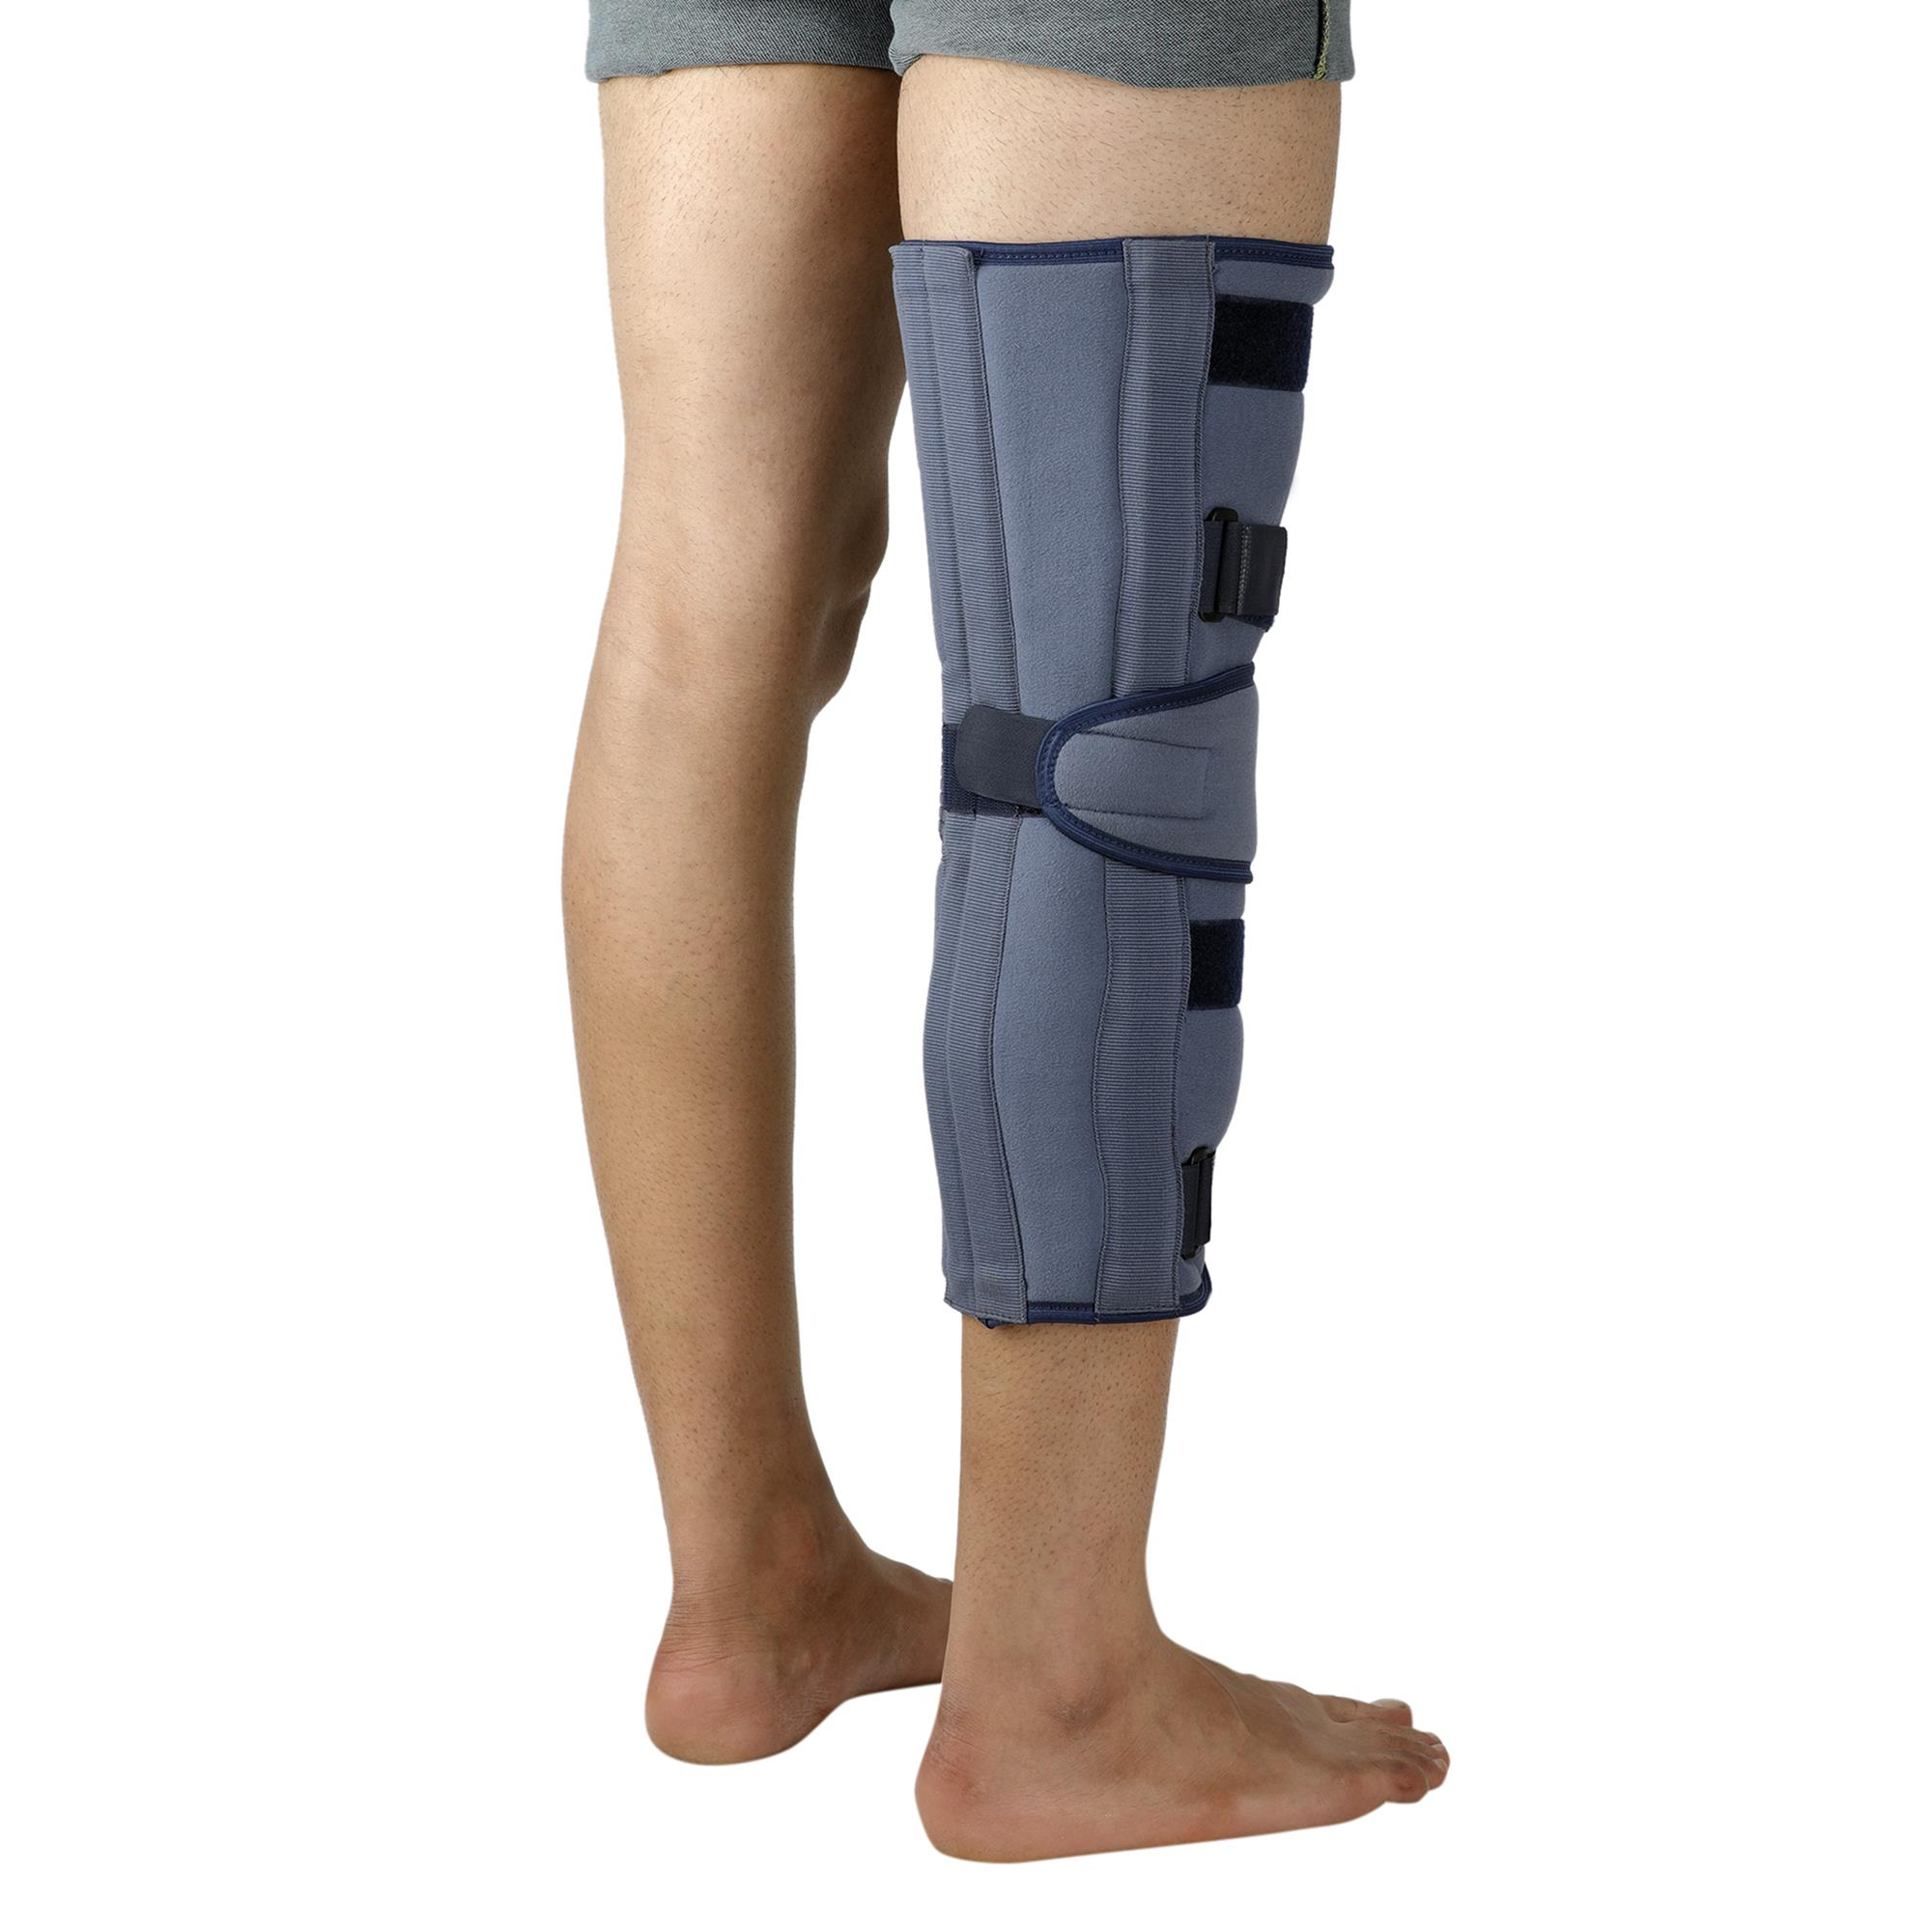 """Lifeshield Knee Immobilizer 19"""": Used For Restricting Leg & Knee Movement After Surgery Or Injury (X Large)"""